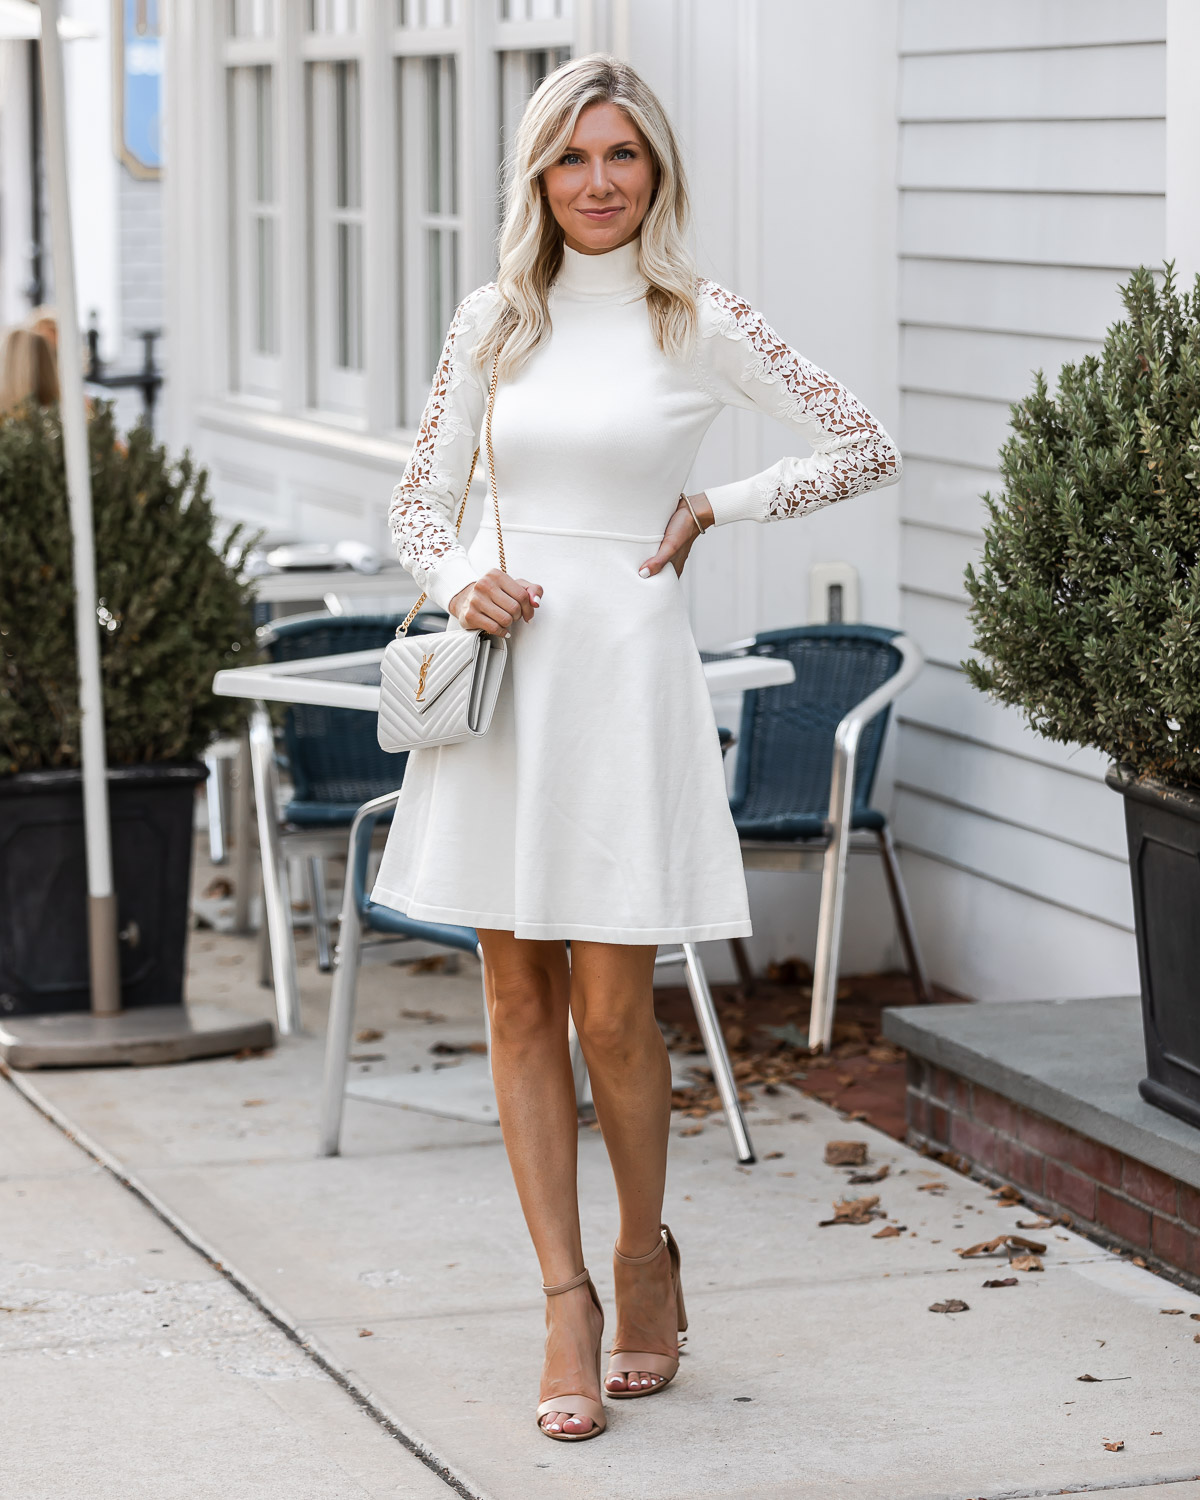 White a-line dress from eliza j The Glamorous Gal